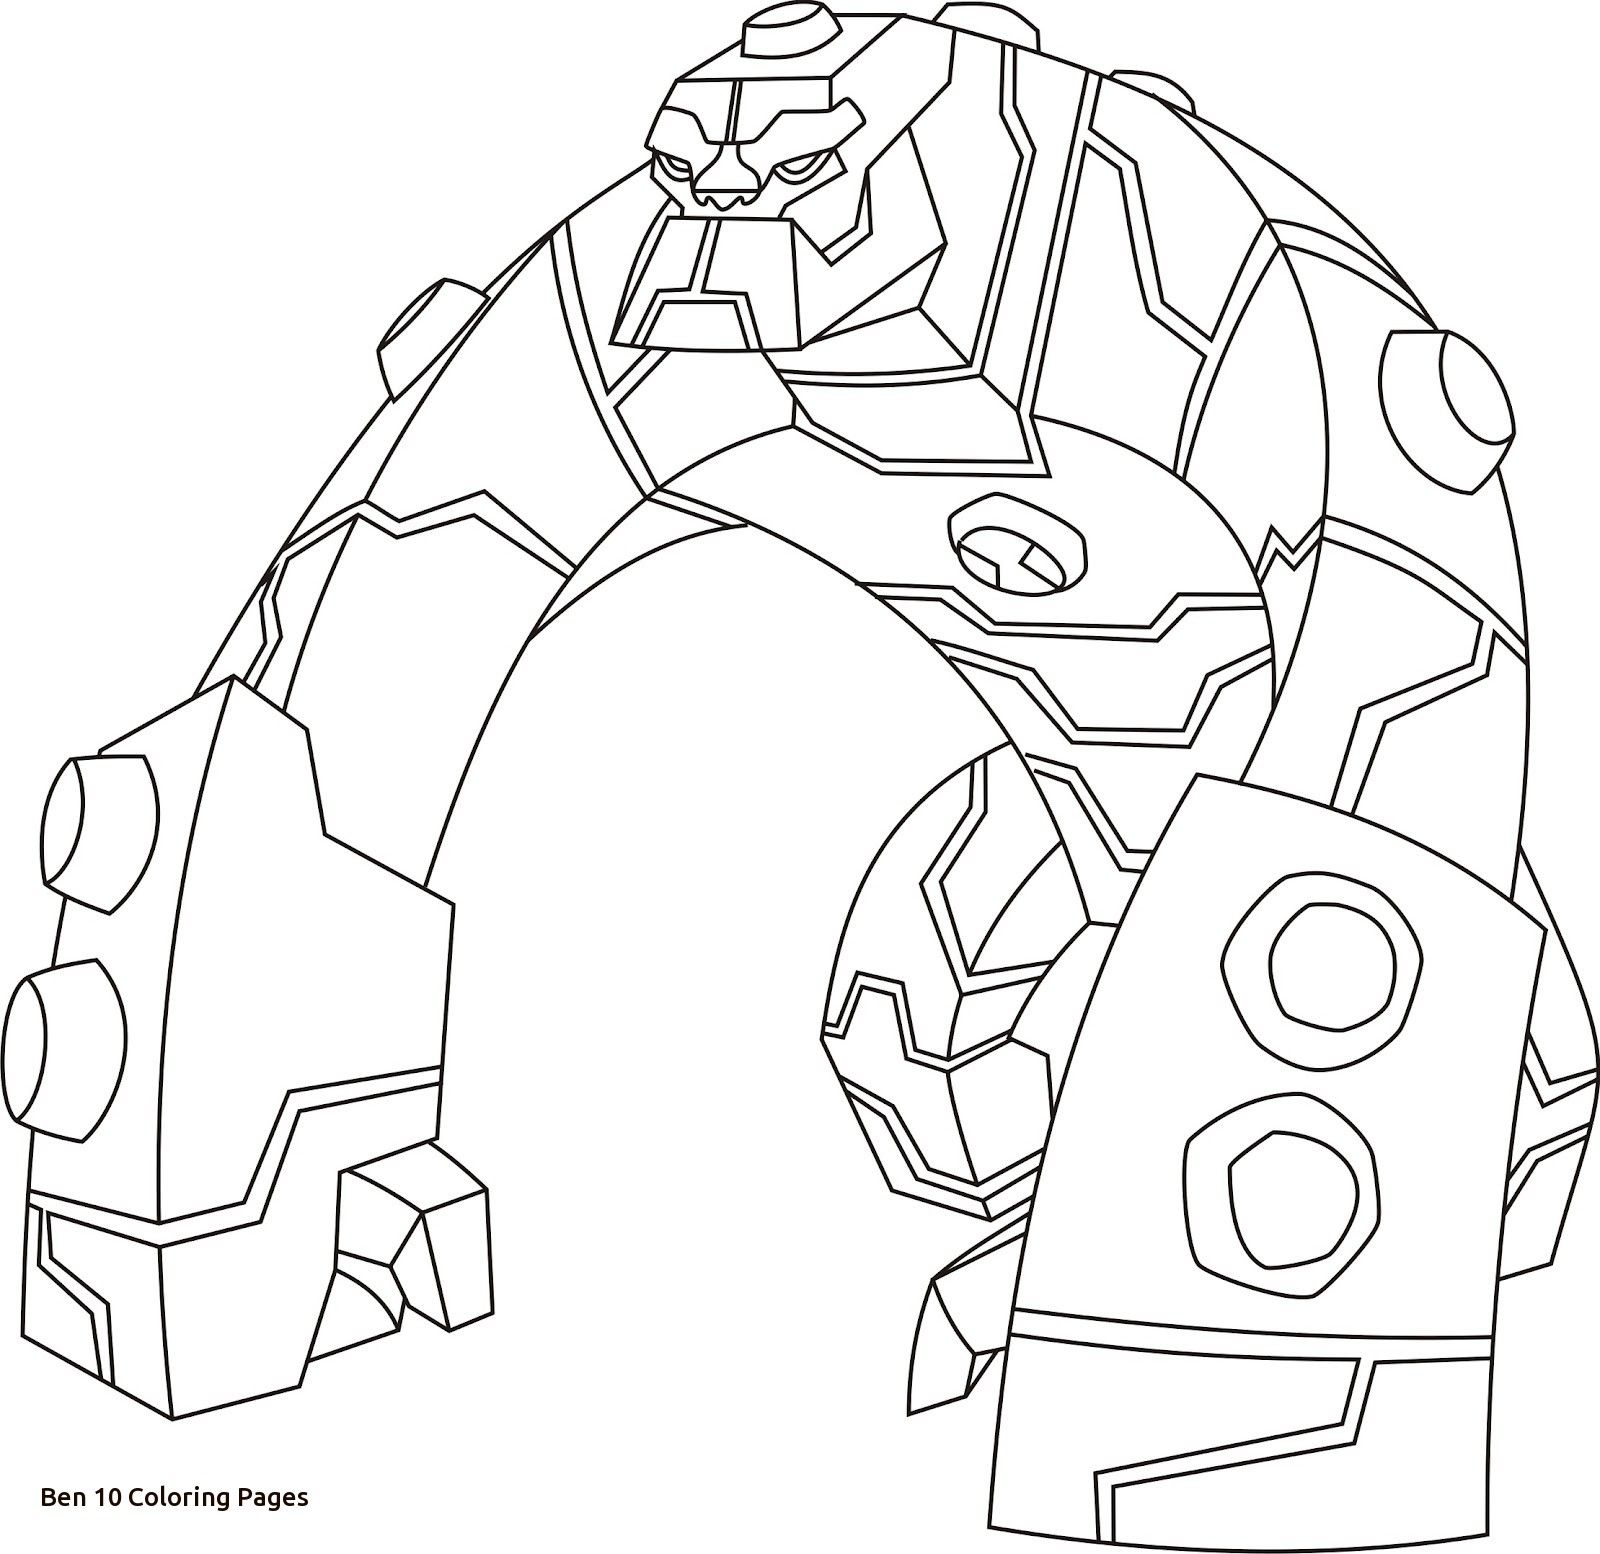 Free Coloring Pages Of Ben 10 Bloxx With Ben 10 Coloring Pages Ben 10 Coloring Pages Ben 10 Omniverse